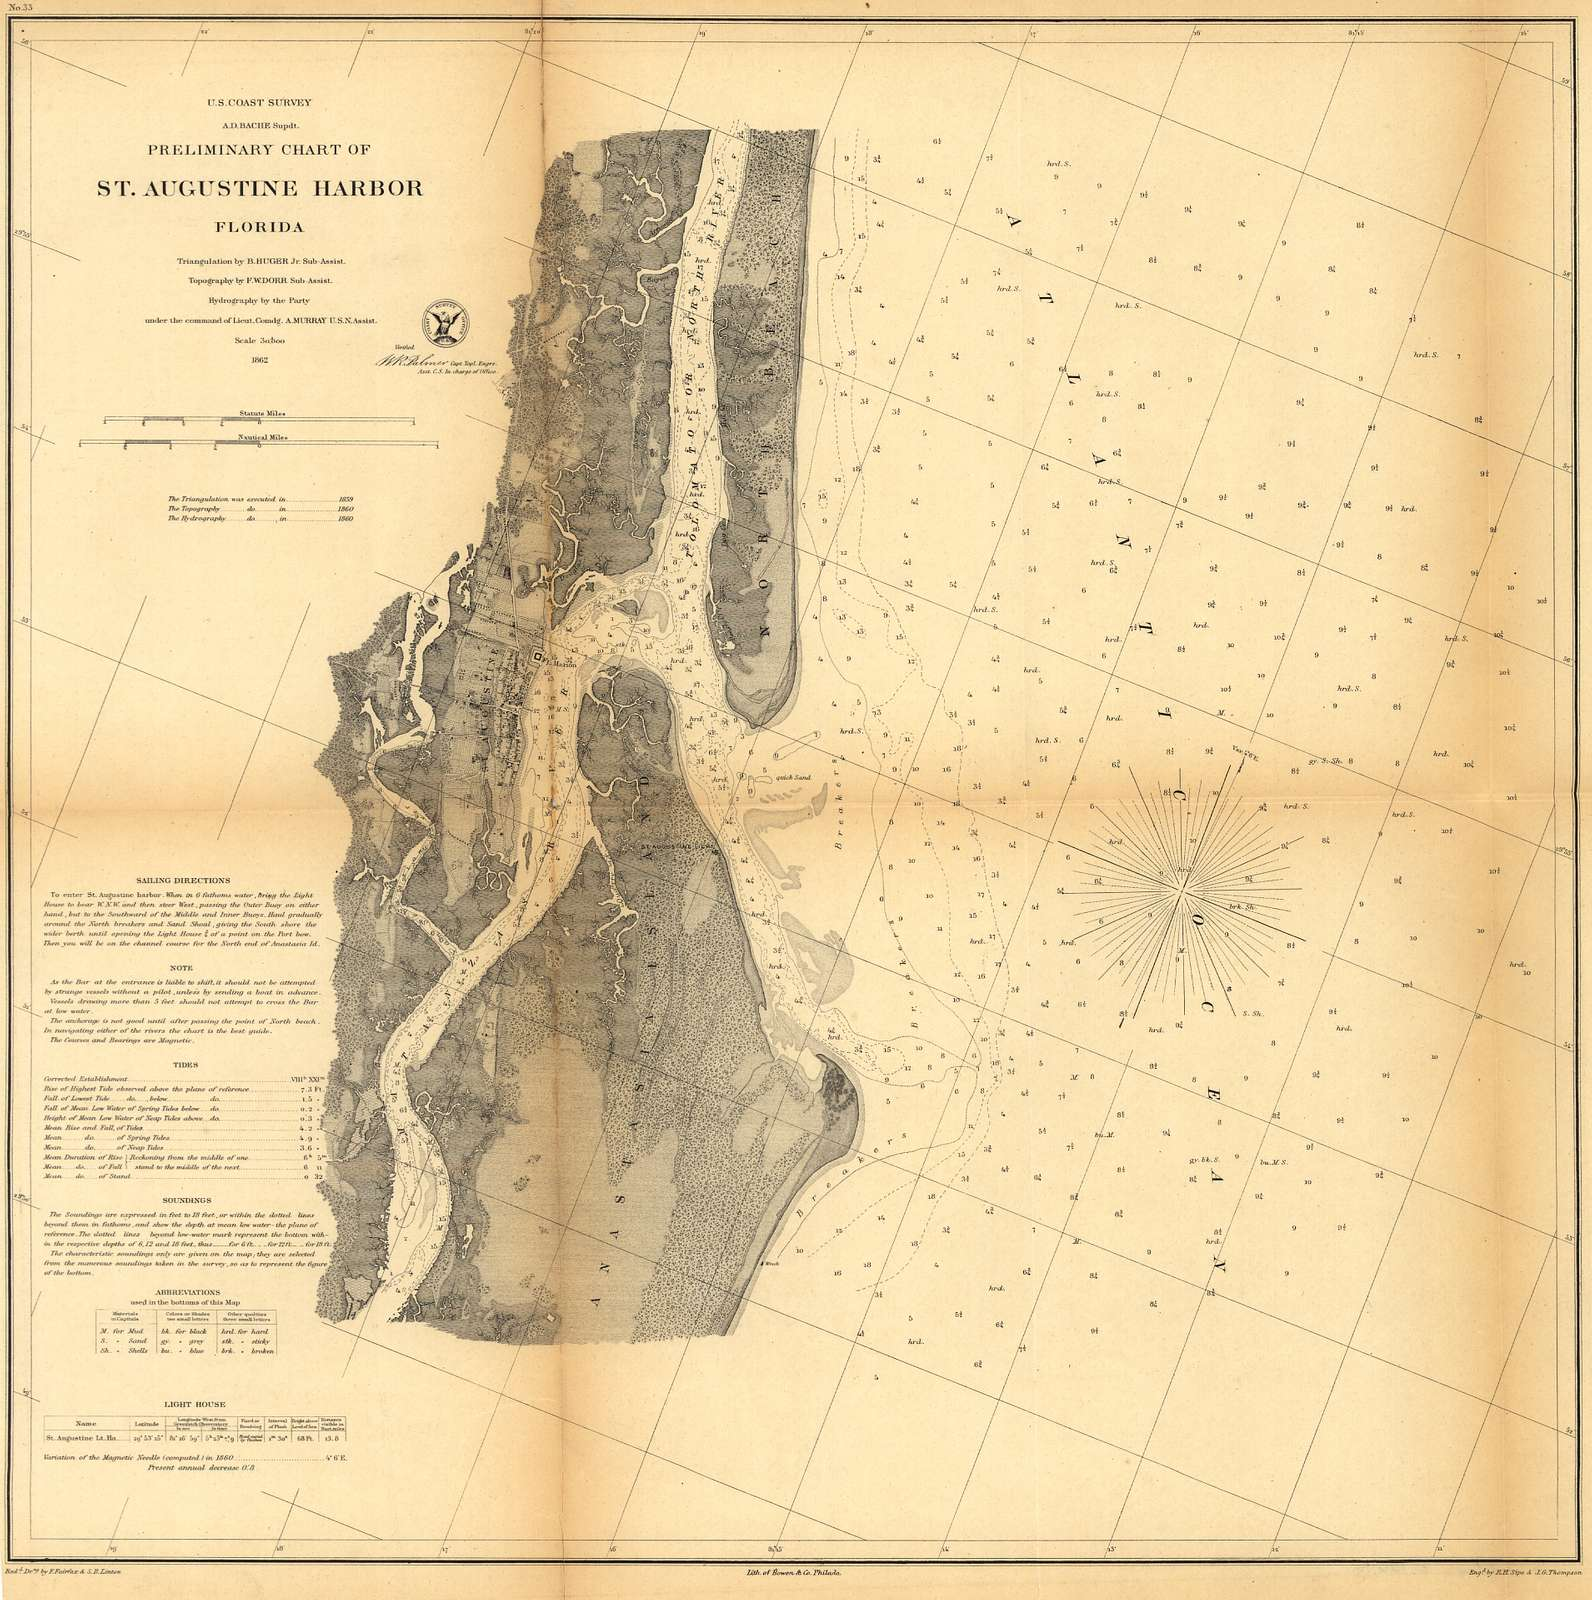 Preliminary chart of St. Augustine harbor, Florida